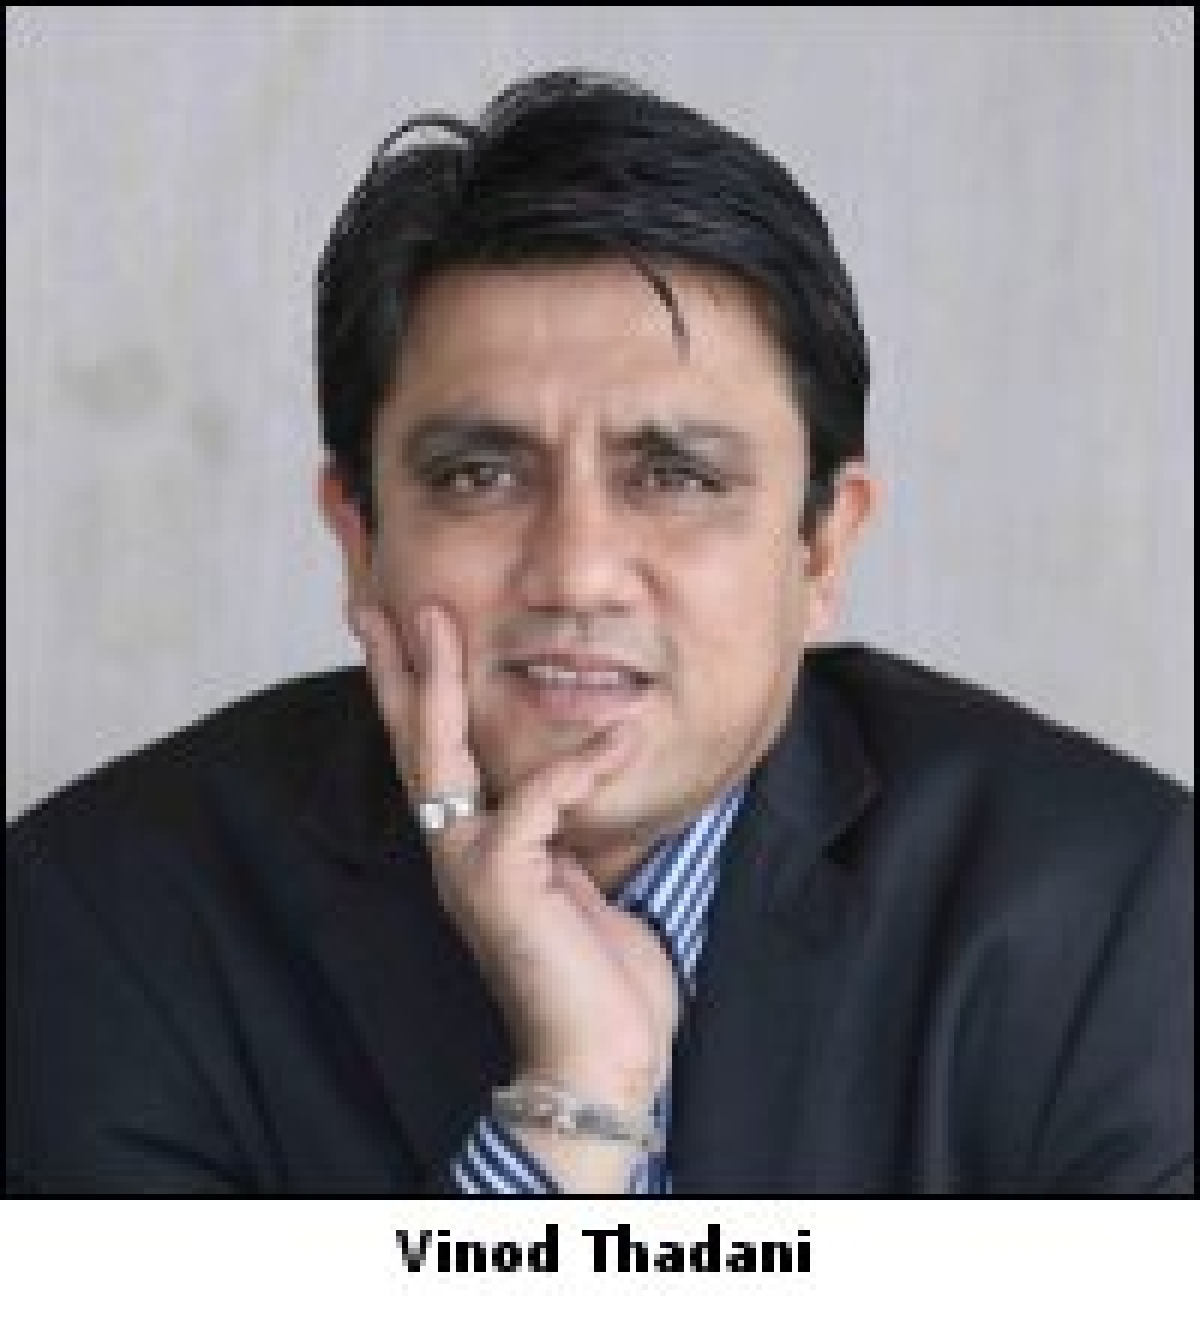 Vinod Thadani promoted as chief digital officer, Mindshare South Asia